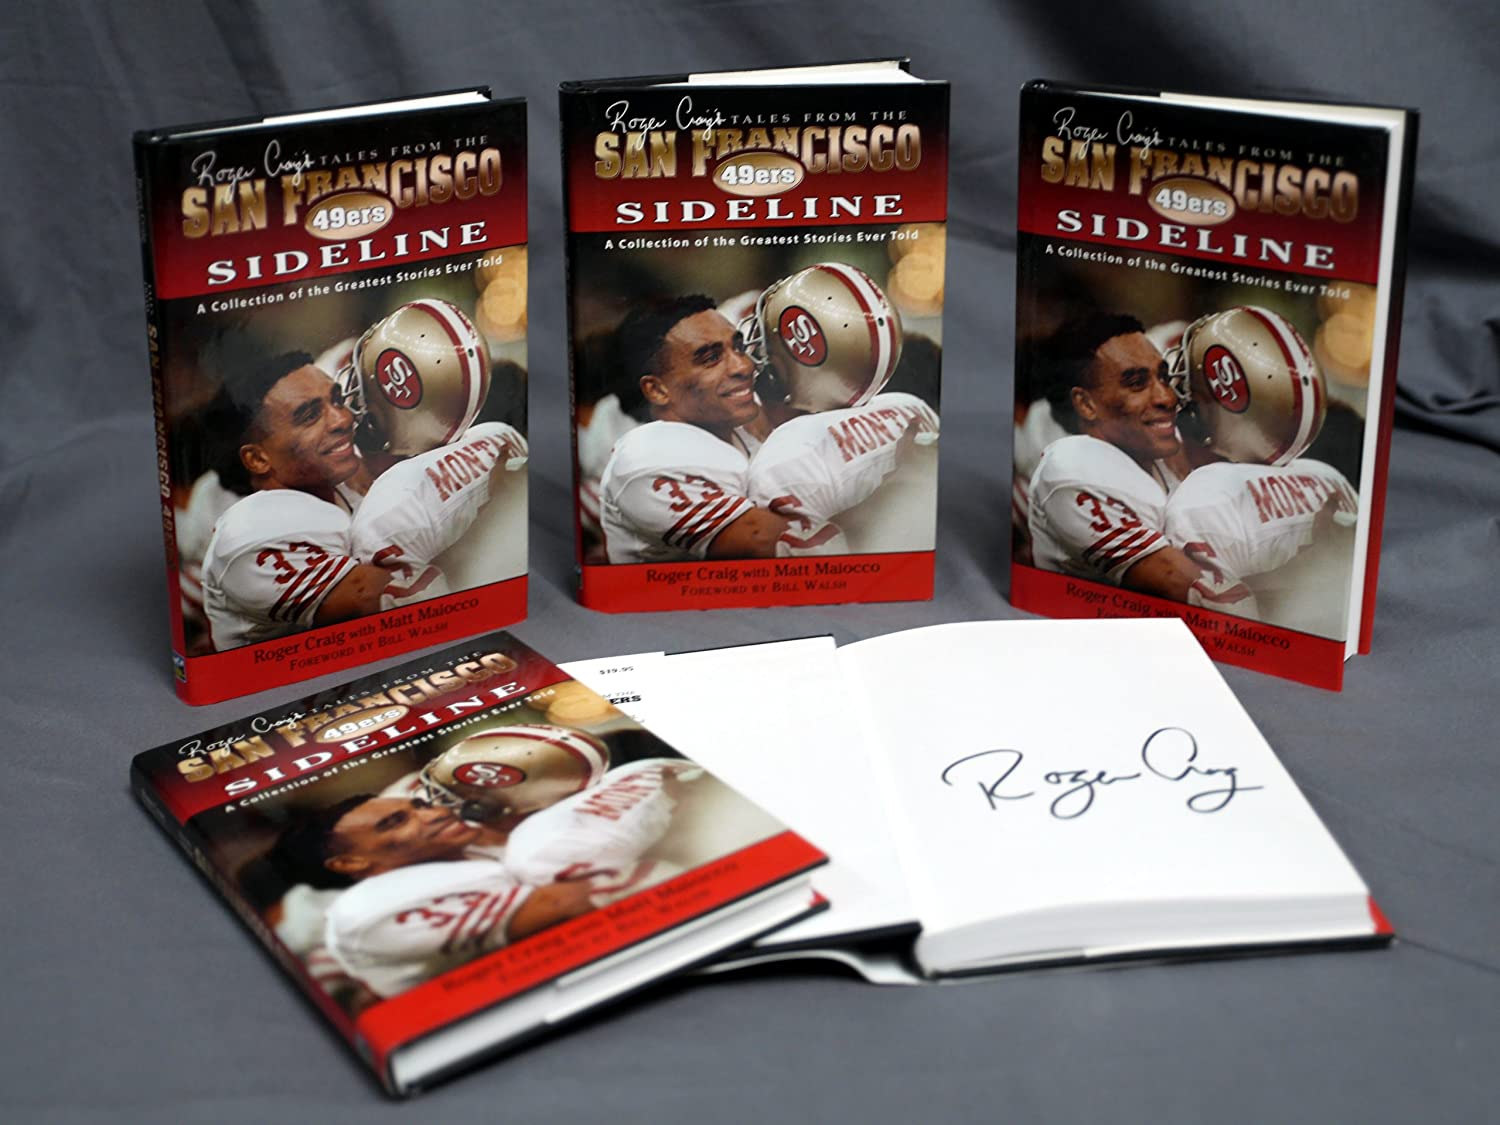 Roger Craig Signed Tales From the San Francisco 49ers Sideline